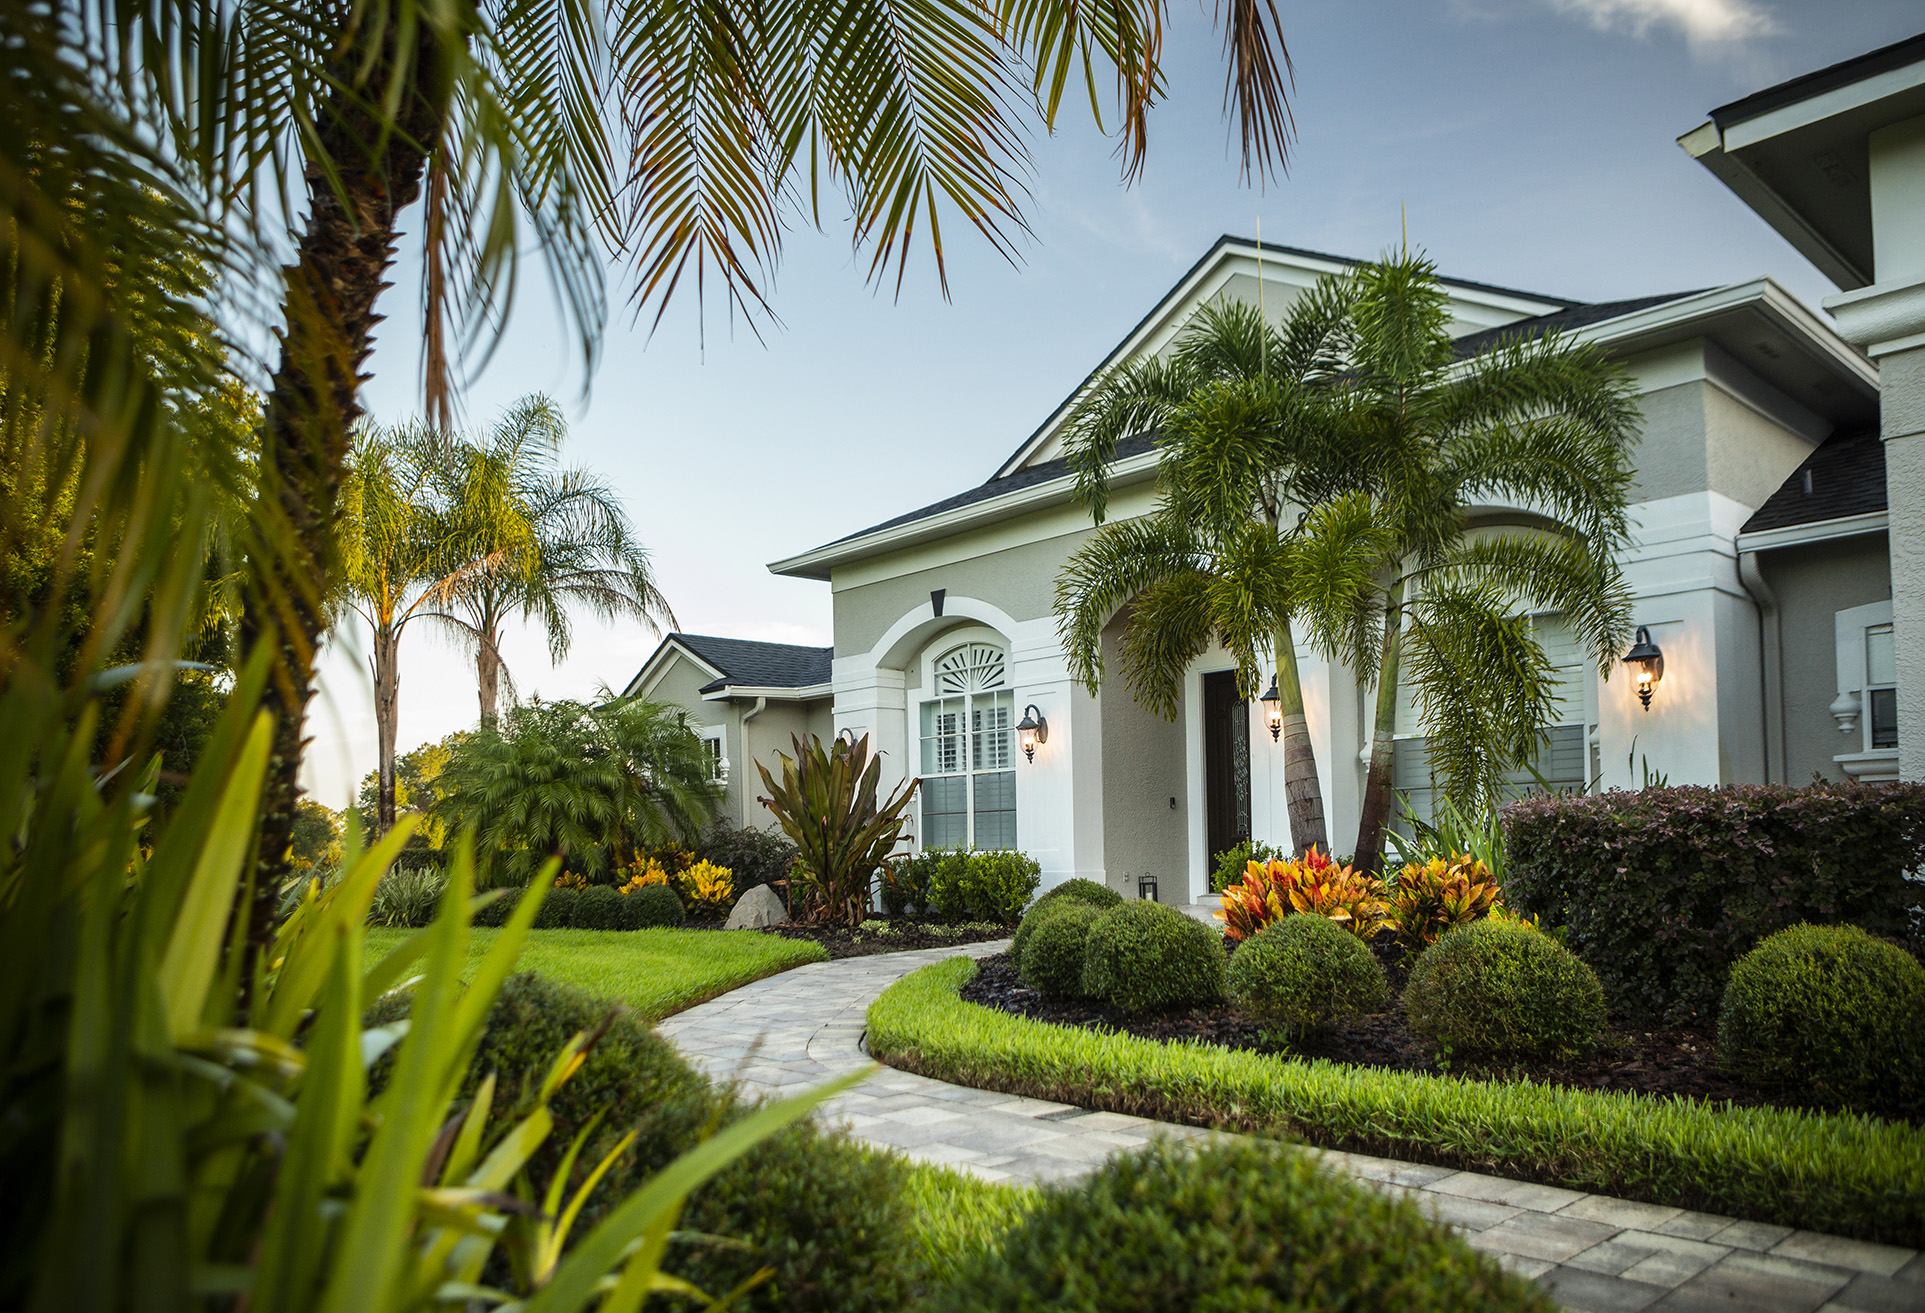 Residential landscape designed by Ground Source in in Orlando